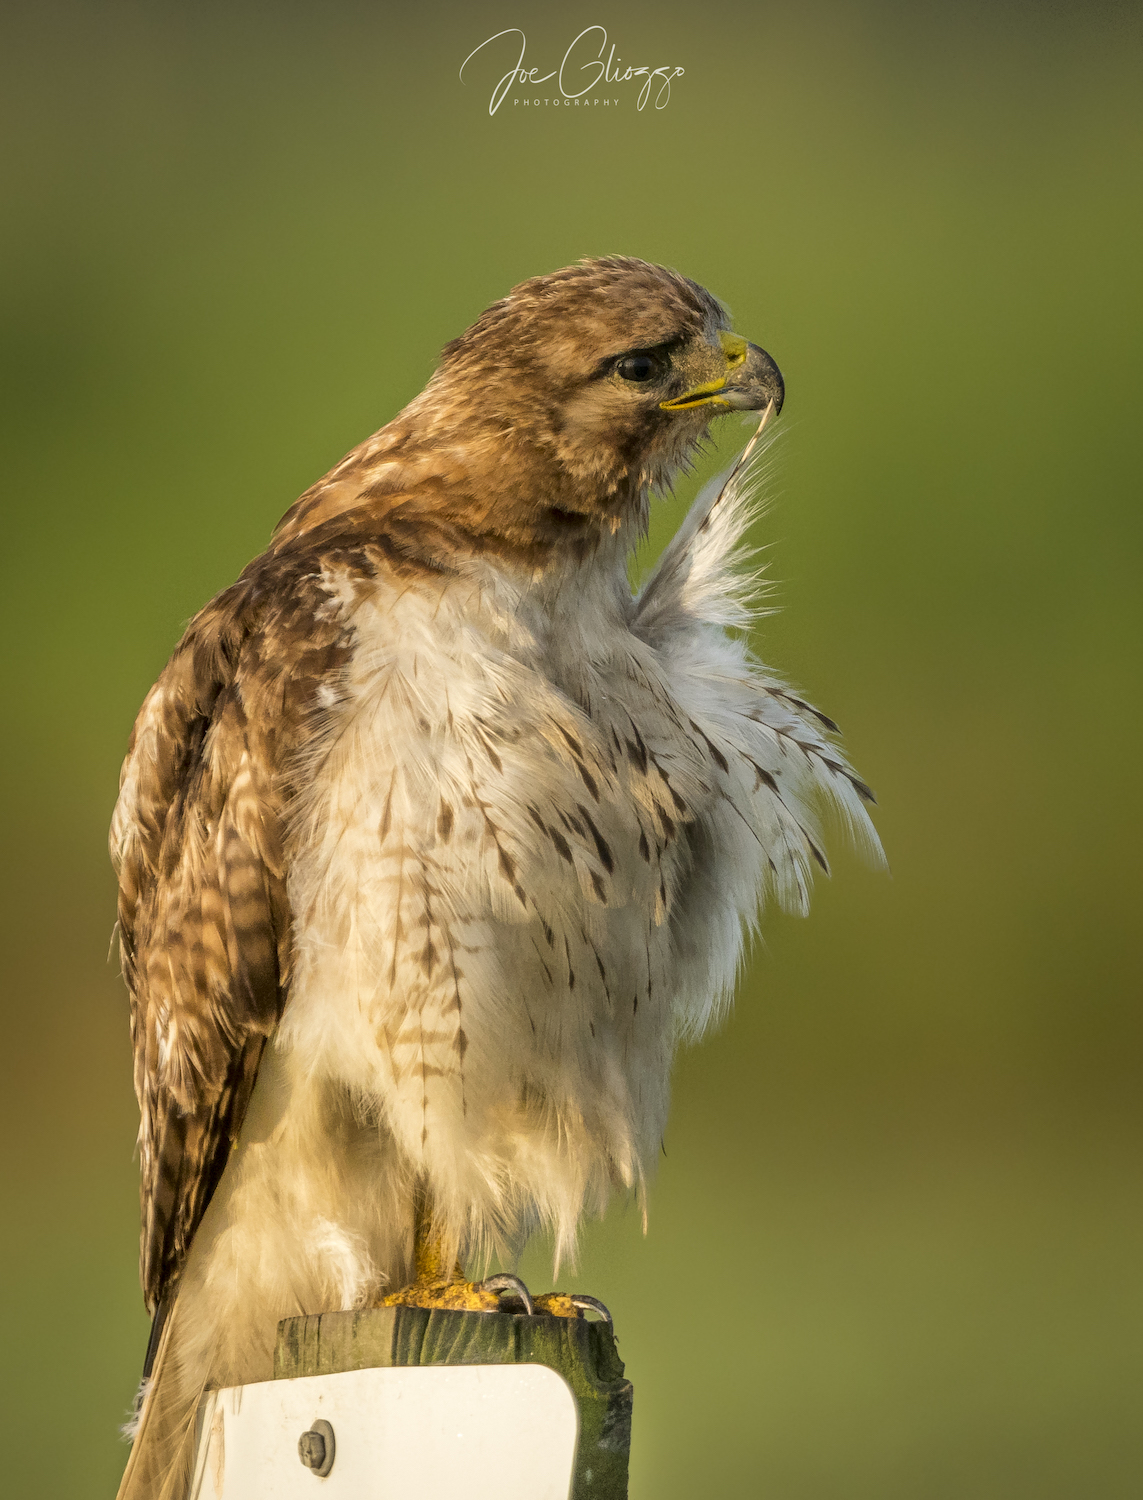 RED TAILED HAWK, ONE OF 145 RESIDENT & MIGRATORY BIRD SPECIES IN ALLIGATOR NATIONAL WILDLIFE REFUGE. IMAGE: JOE GLIOZZO